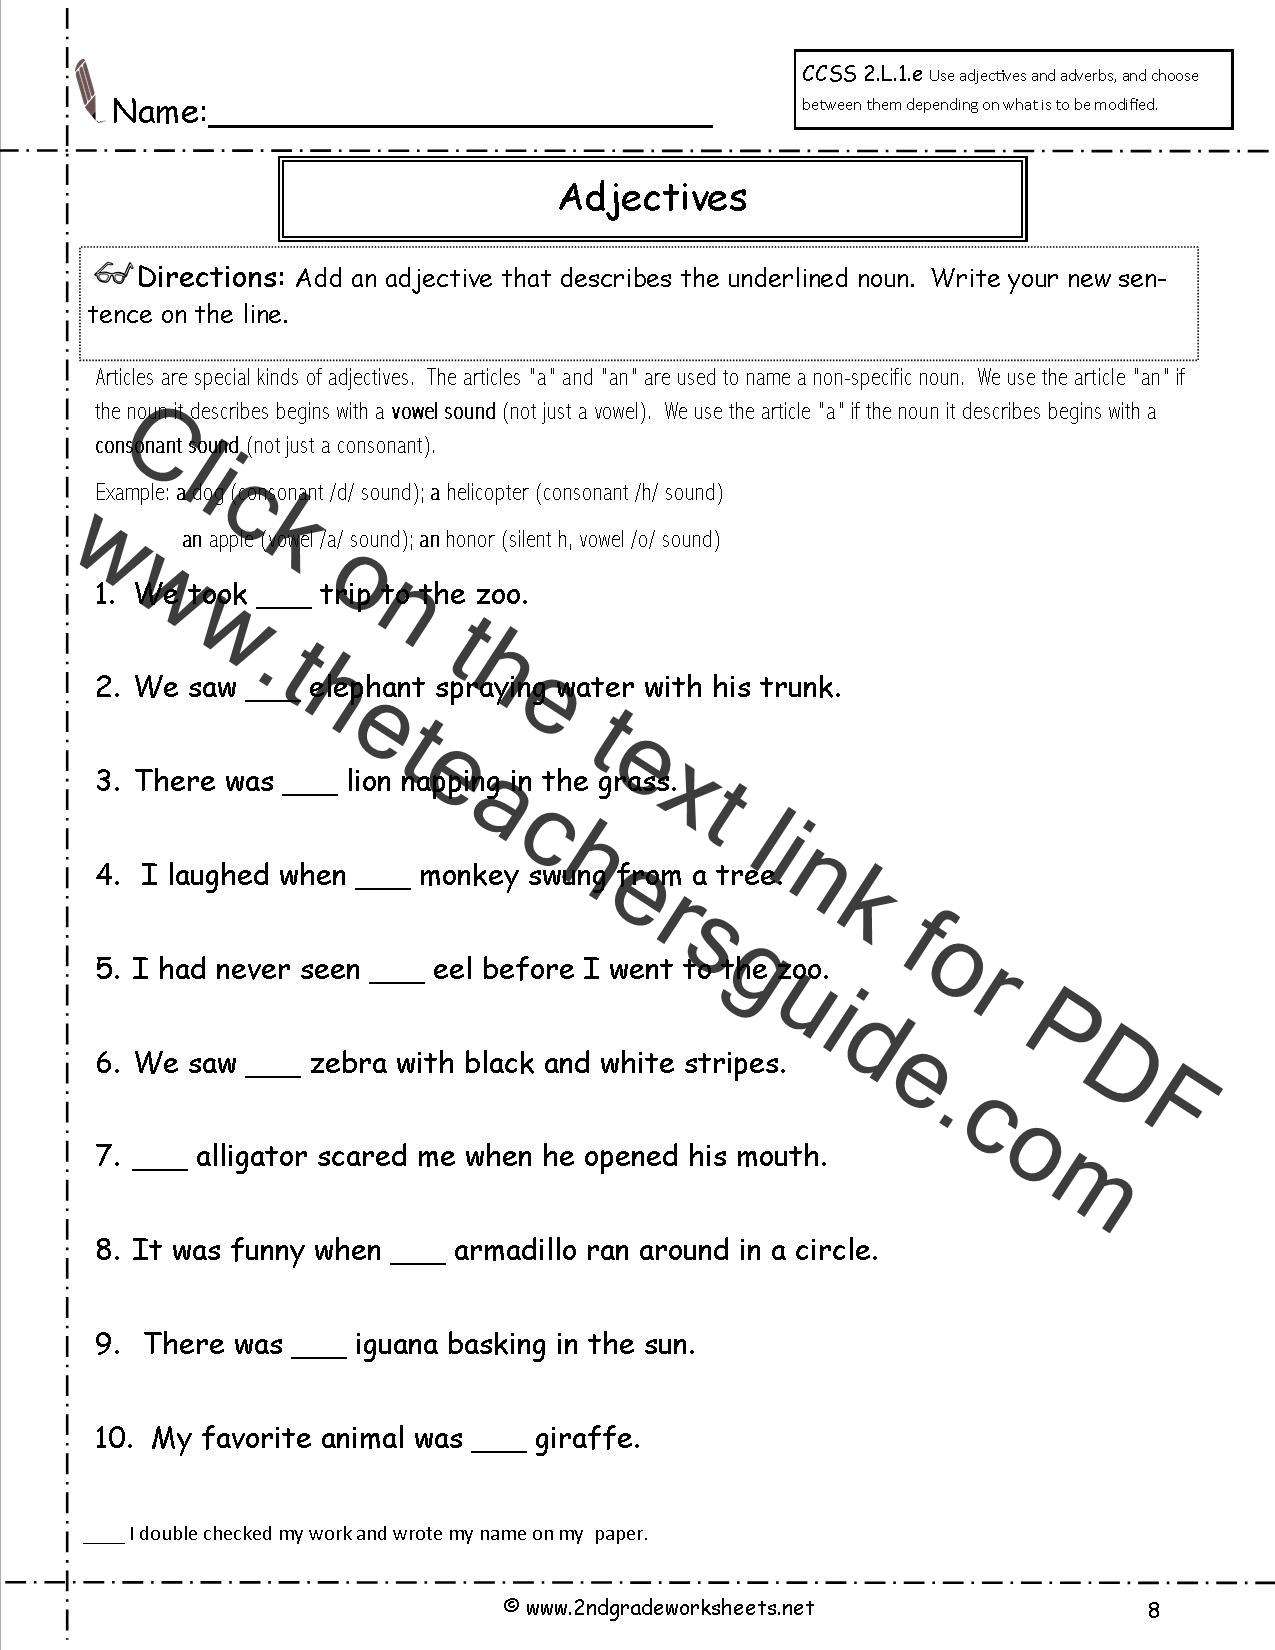 Uncategorized 2 Grade Worksheets free languagegrammar worksheets and printouts adjectives worksheets